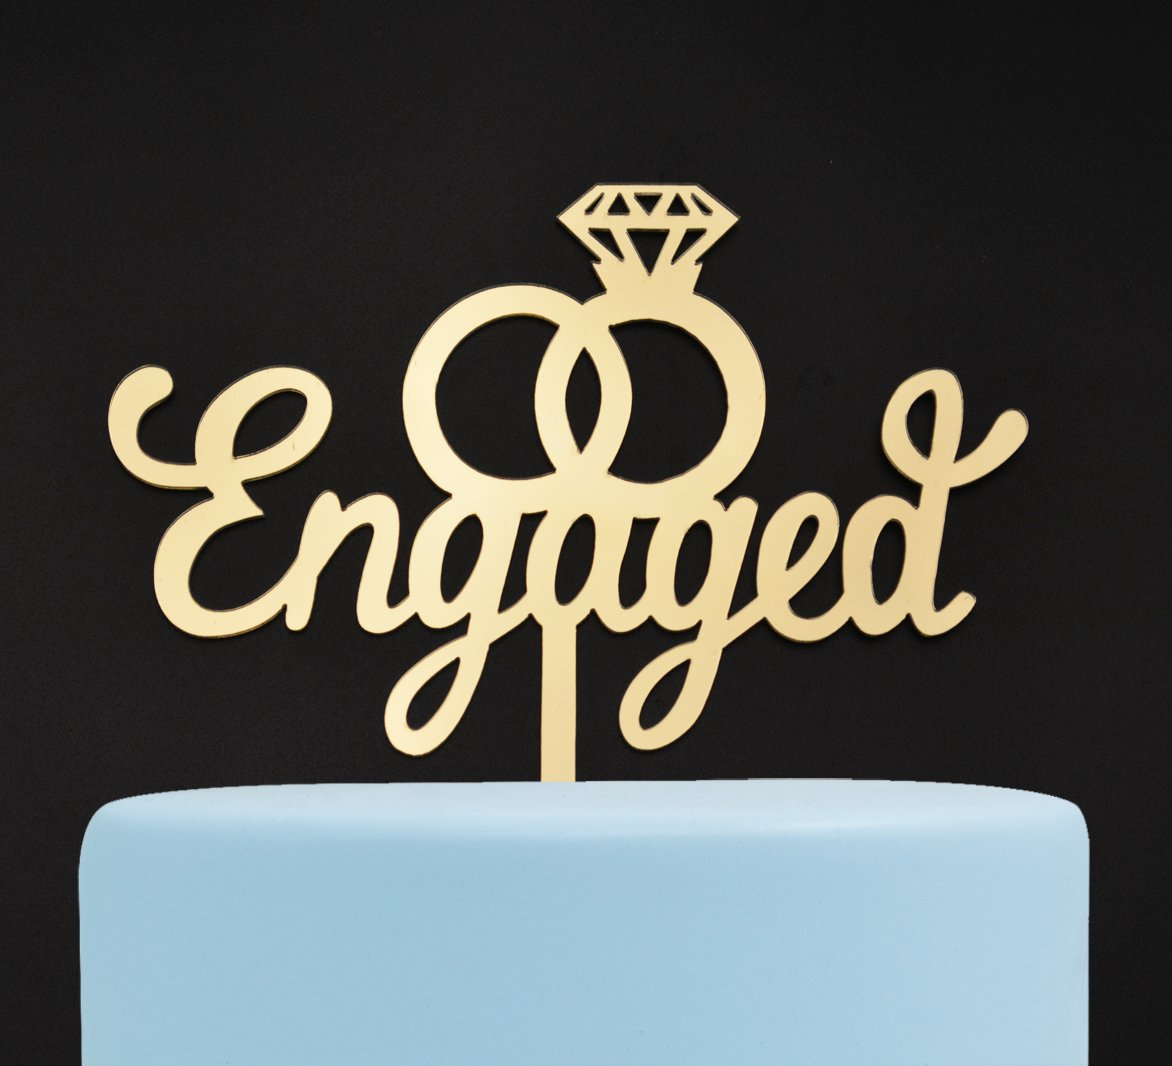 Engaged Cake Topper- Engagement Wedding Party Decorations (Gold)